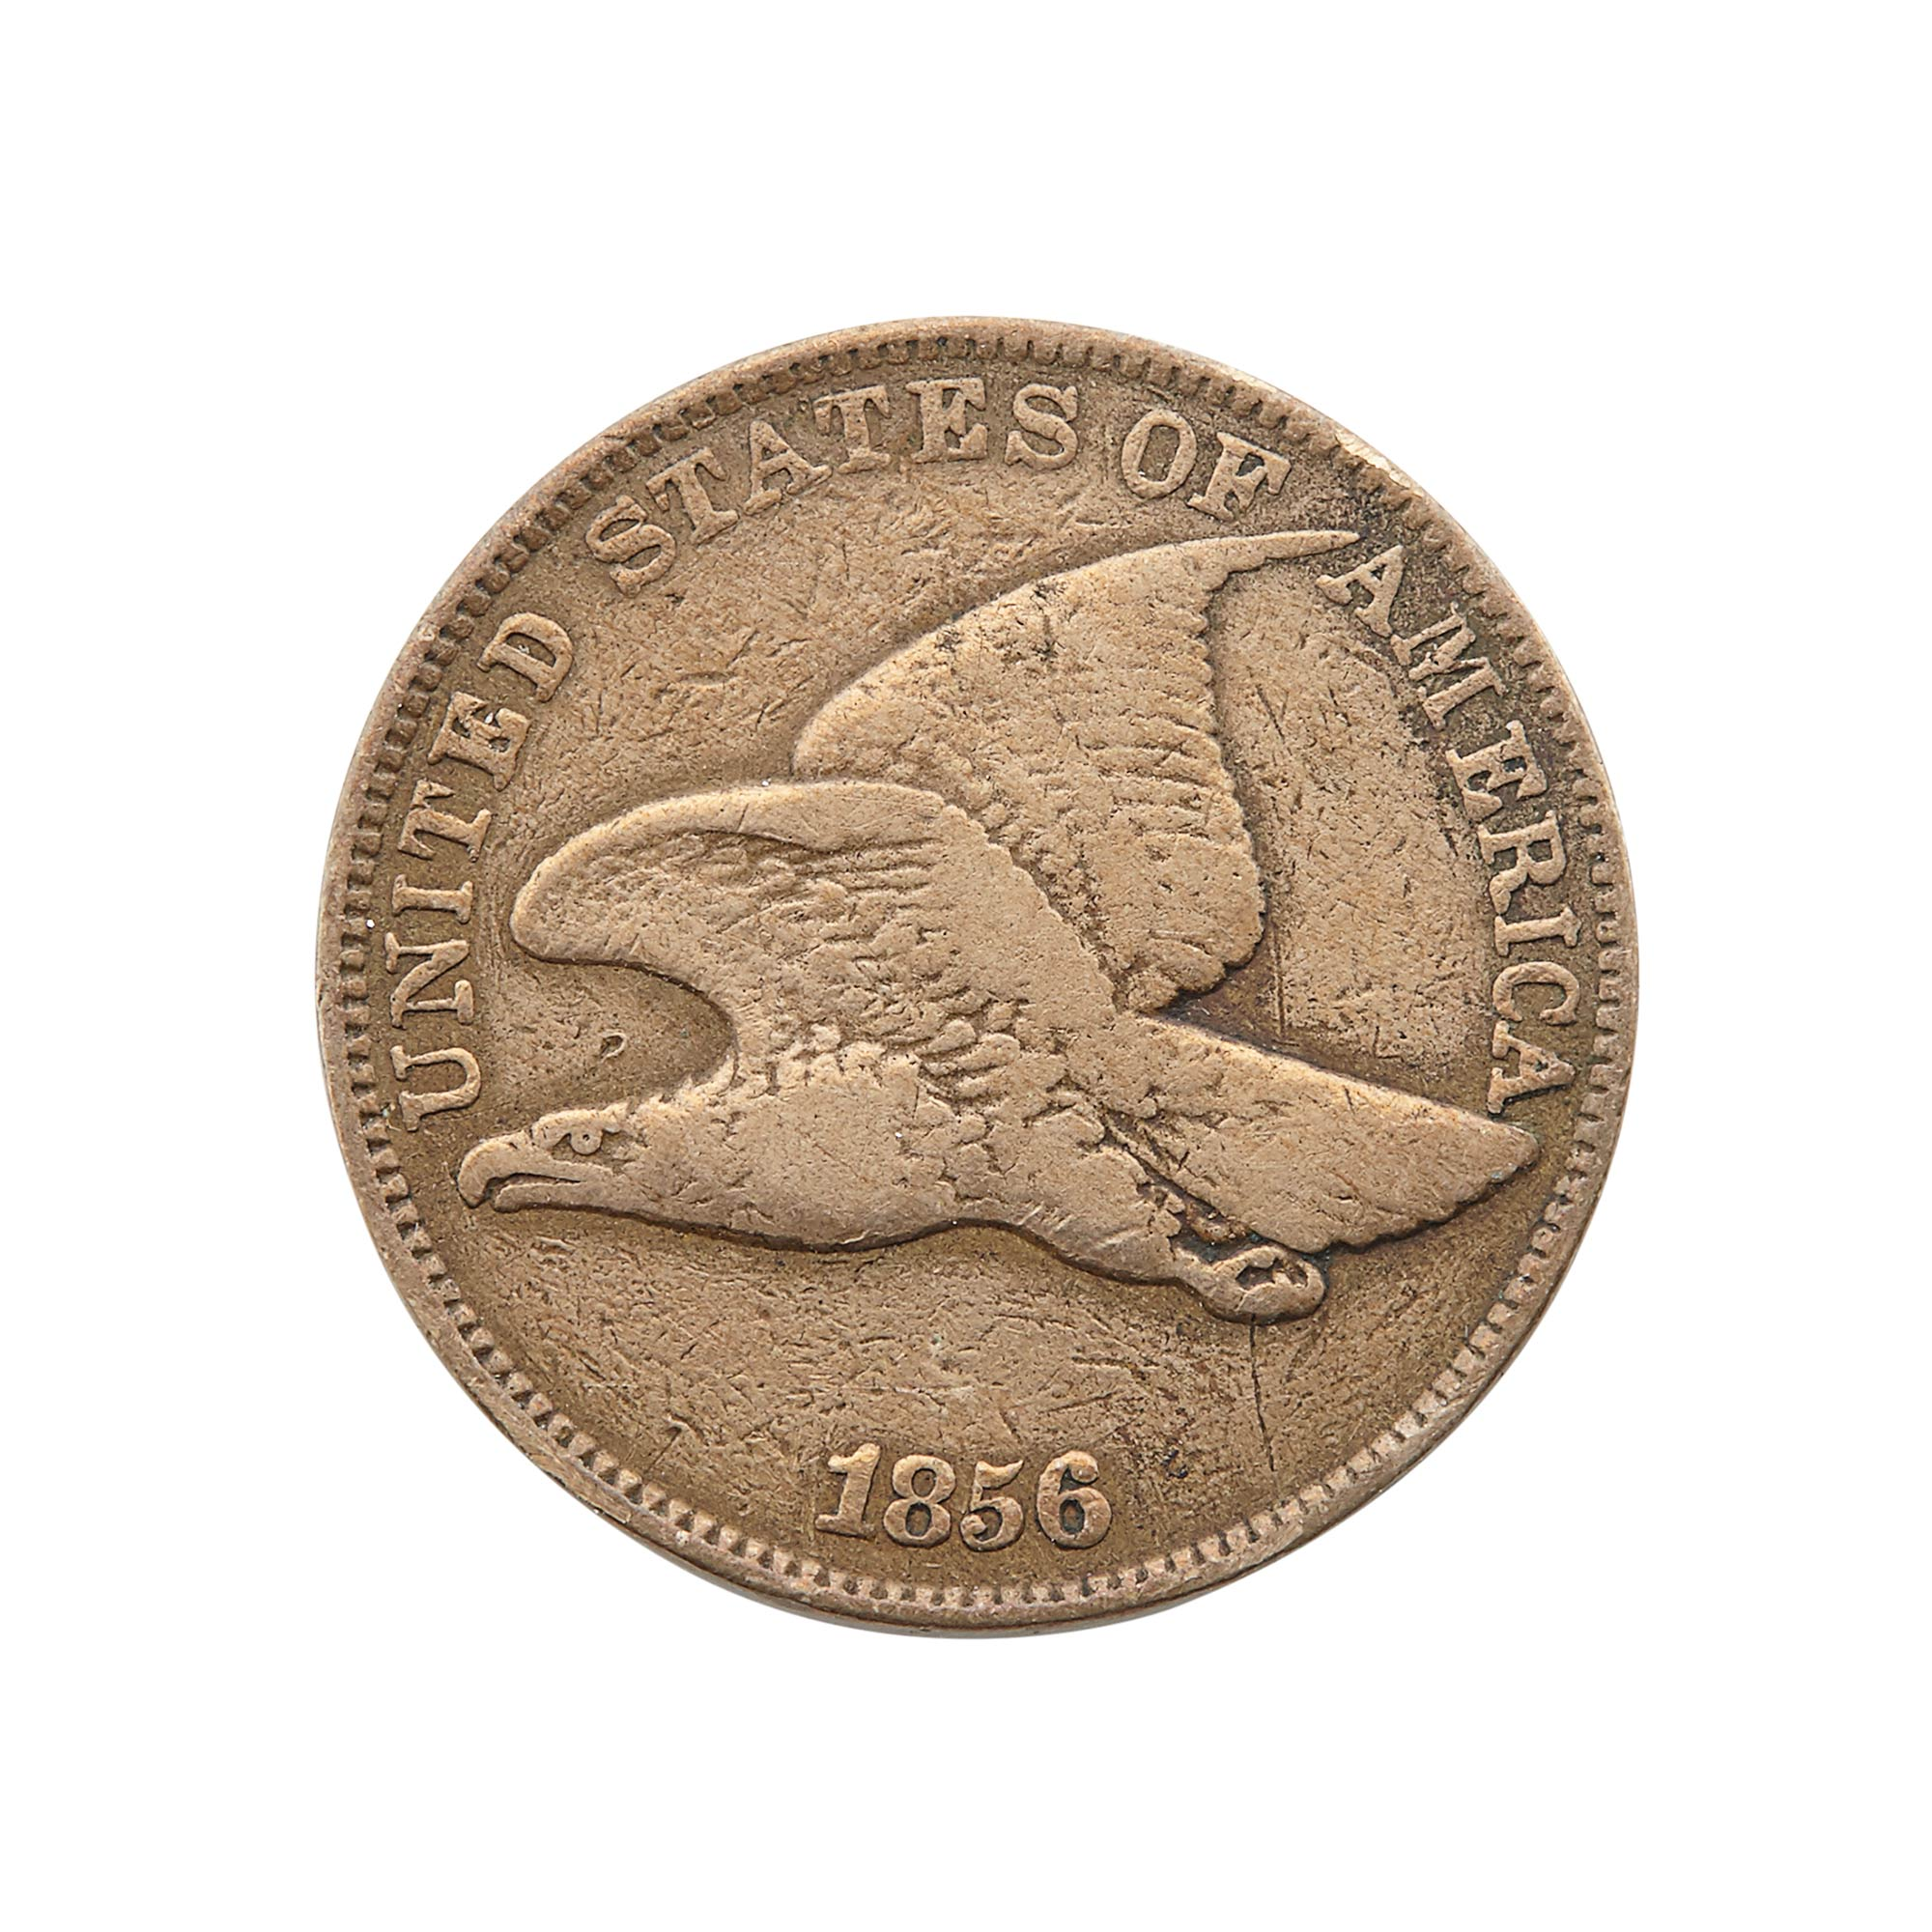 Lot image - United States 1856 Flying Eagle Cent